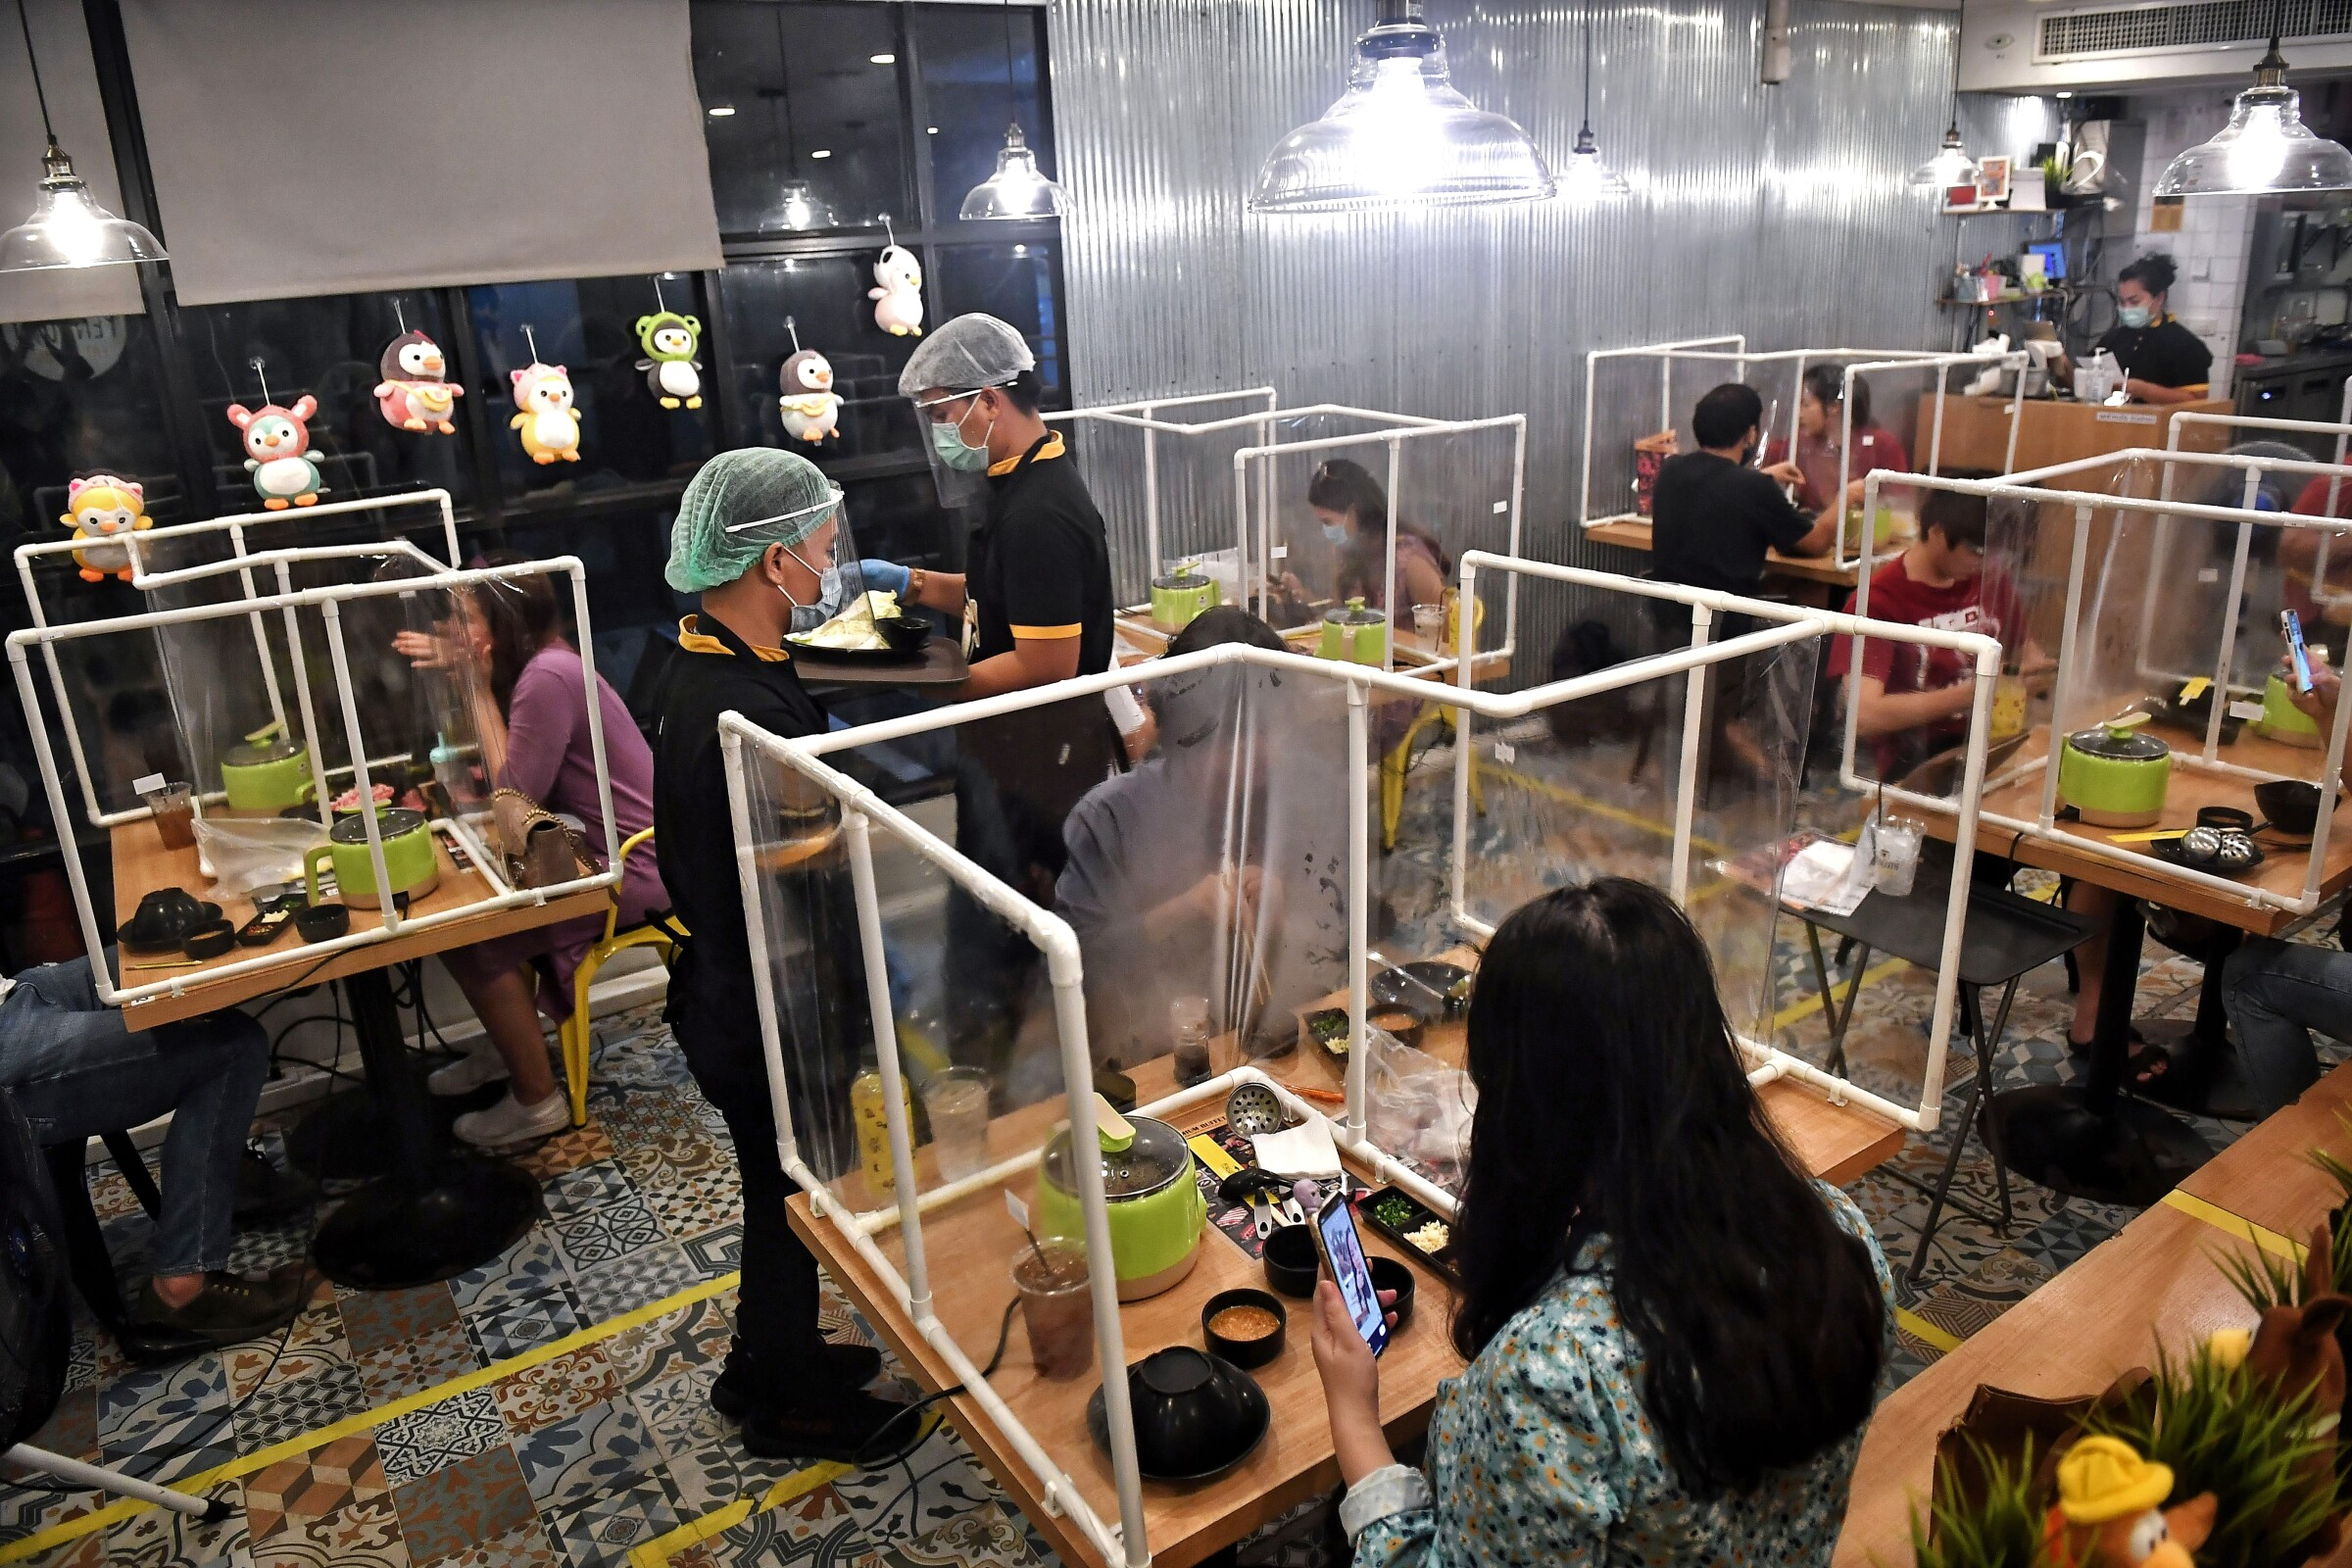 Plastic partitions separate diners on Tuesday in Bangkok.